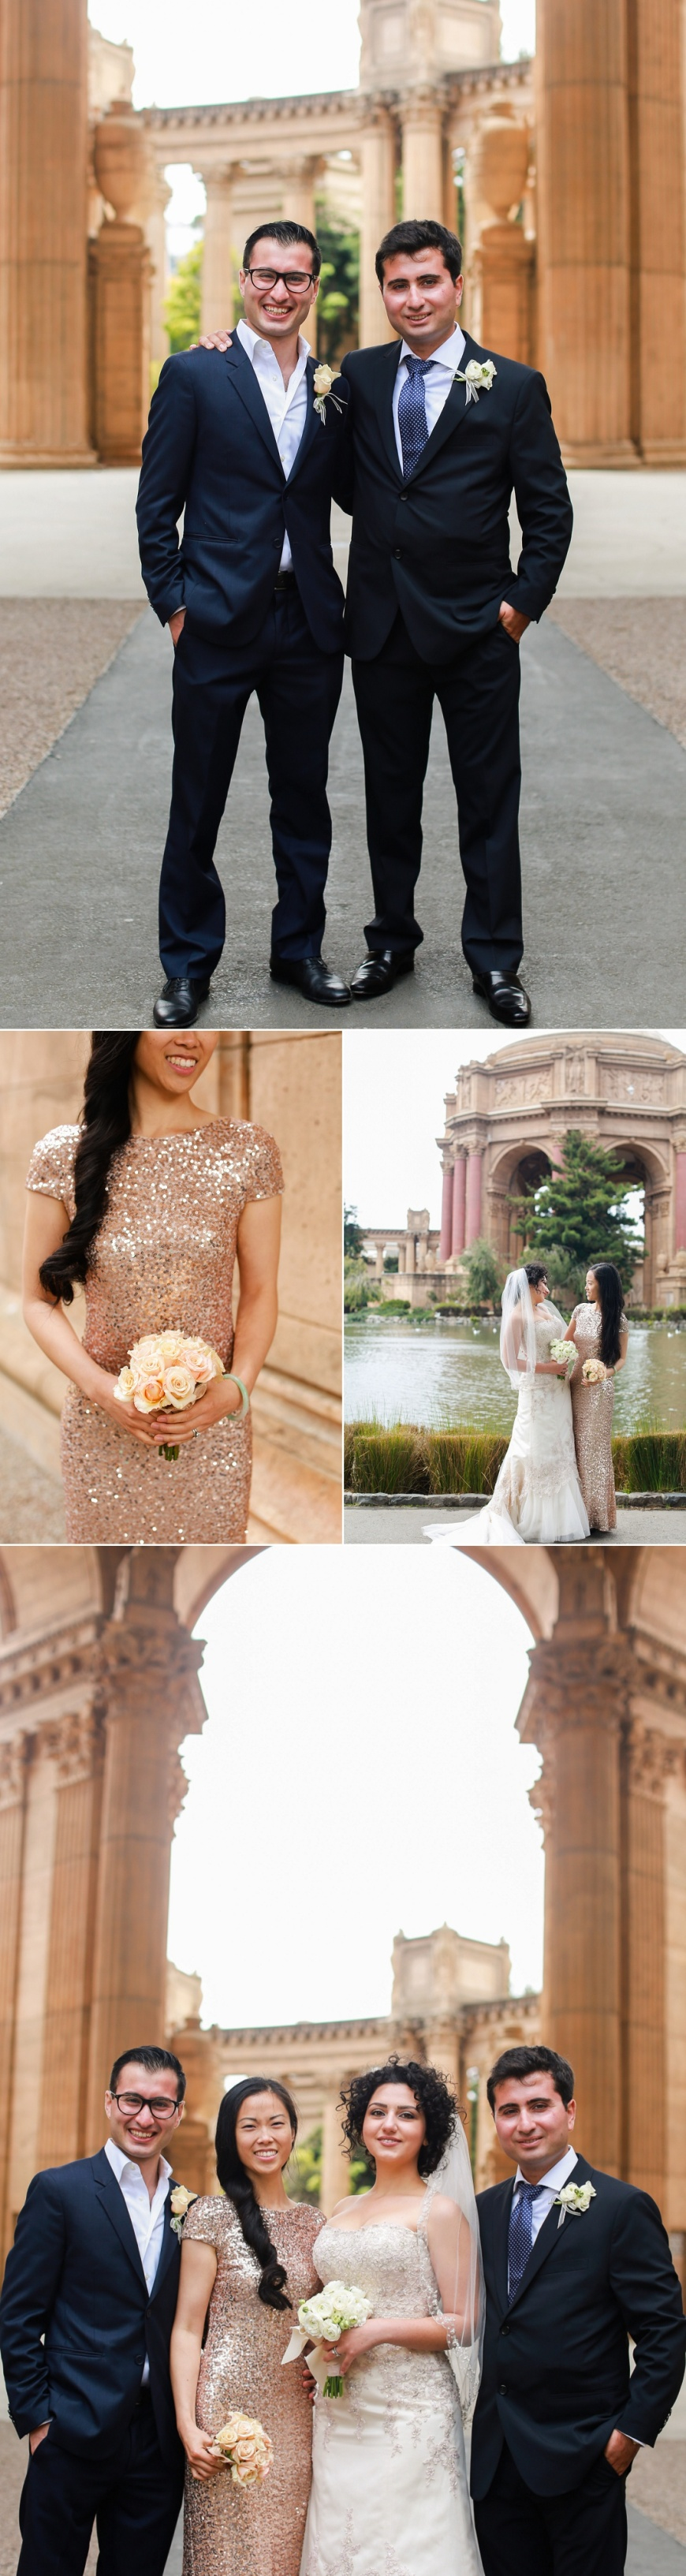 Palace of Fine Arts Wedding_1041.jpg